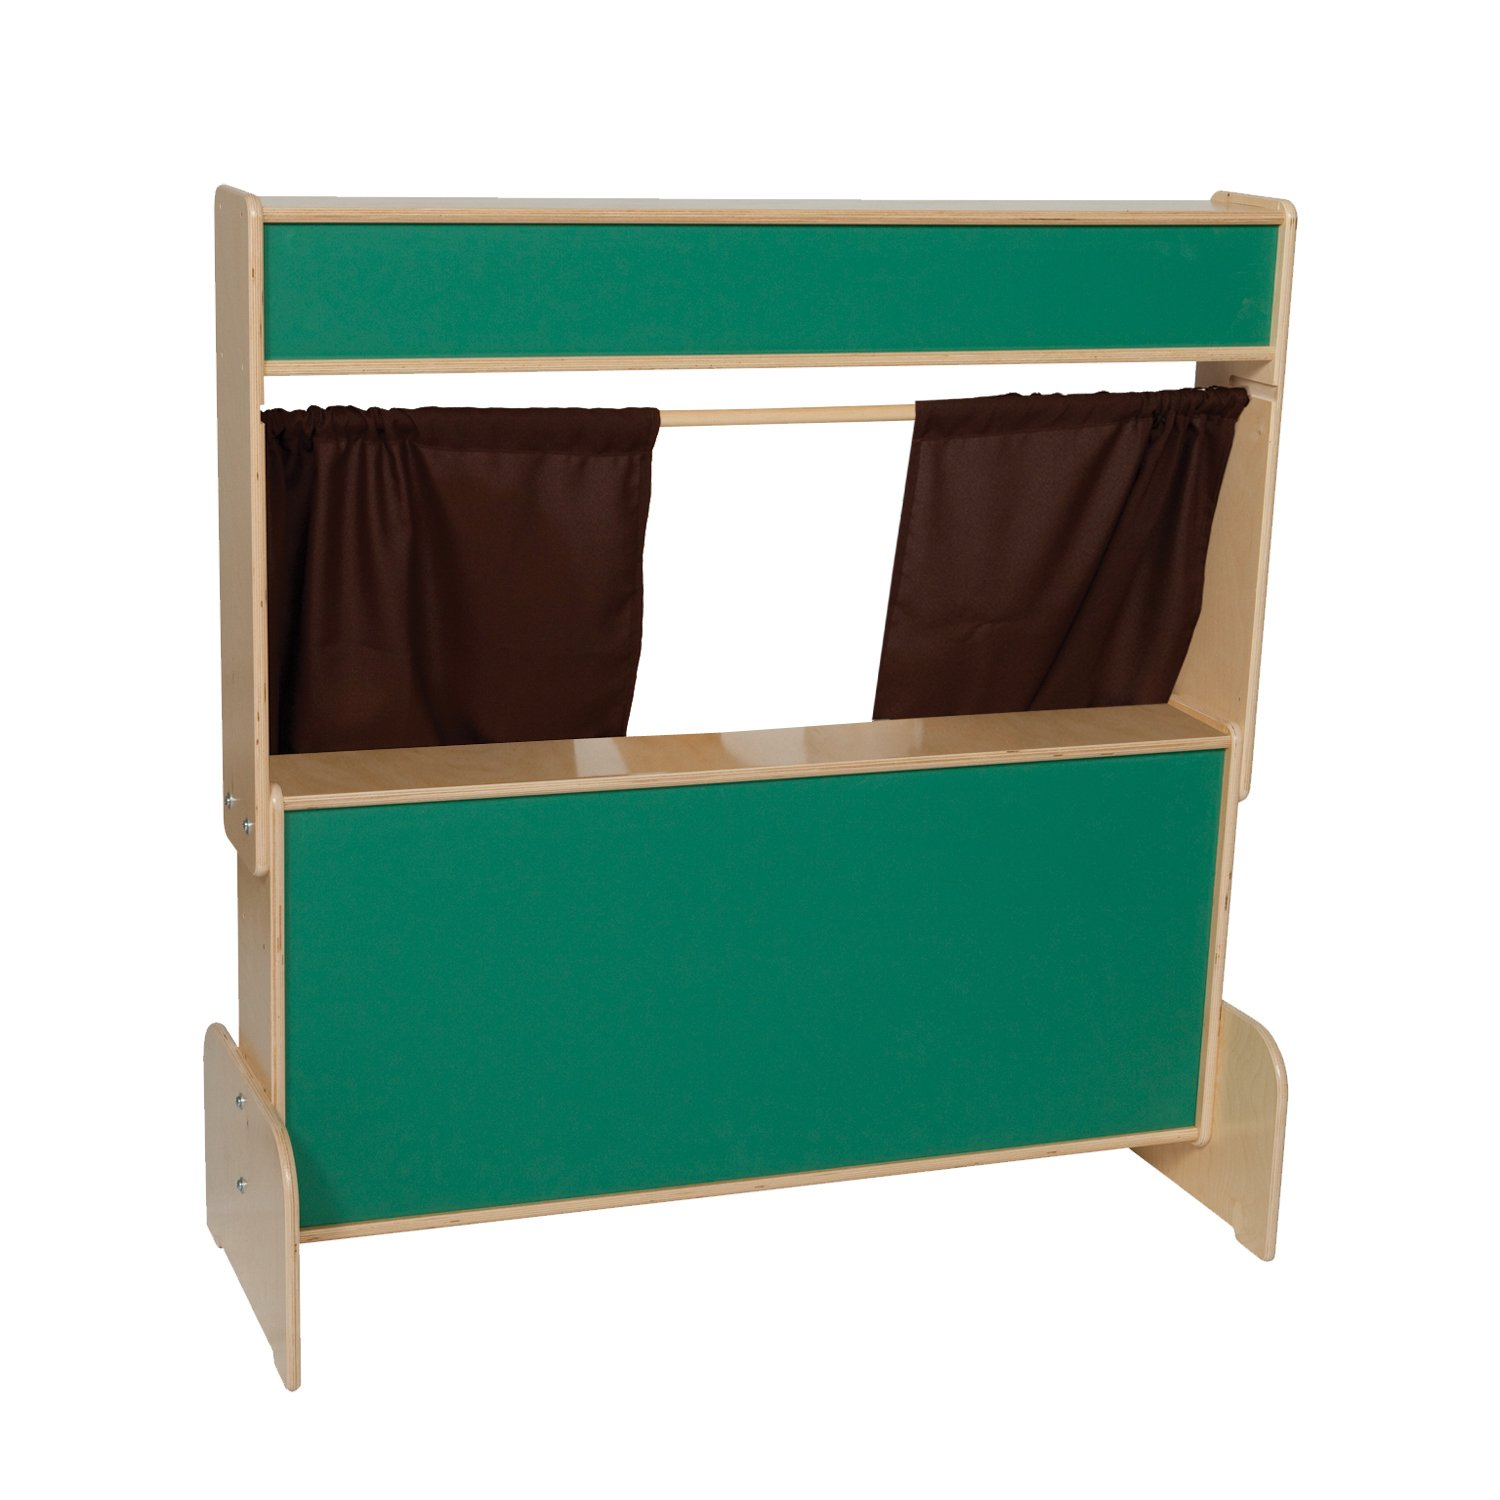 Wood Designs 21650BN Deluxe Puppet Theater with Chalkboard and Brown Curtains